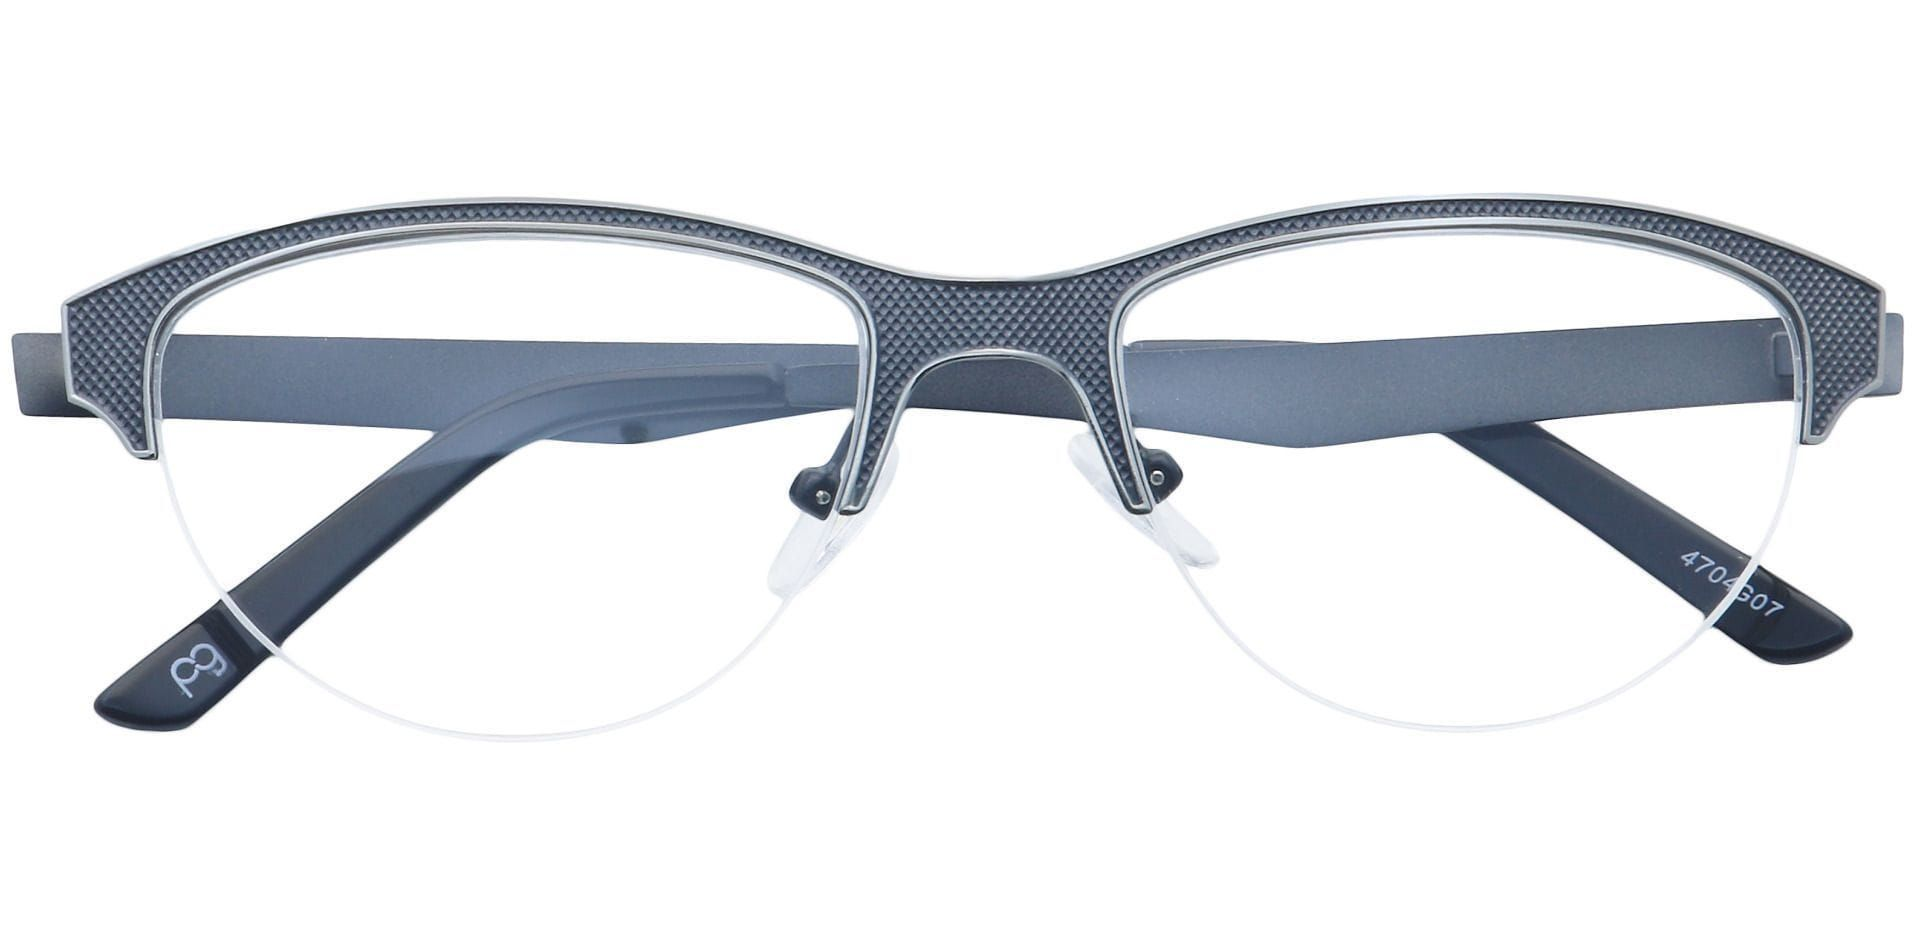 Joan Cat-Eye Progressive Glasses - Gray